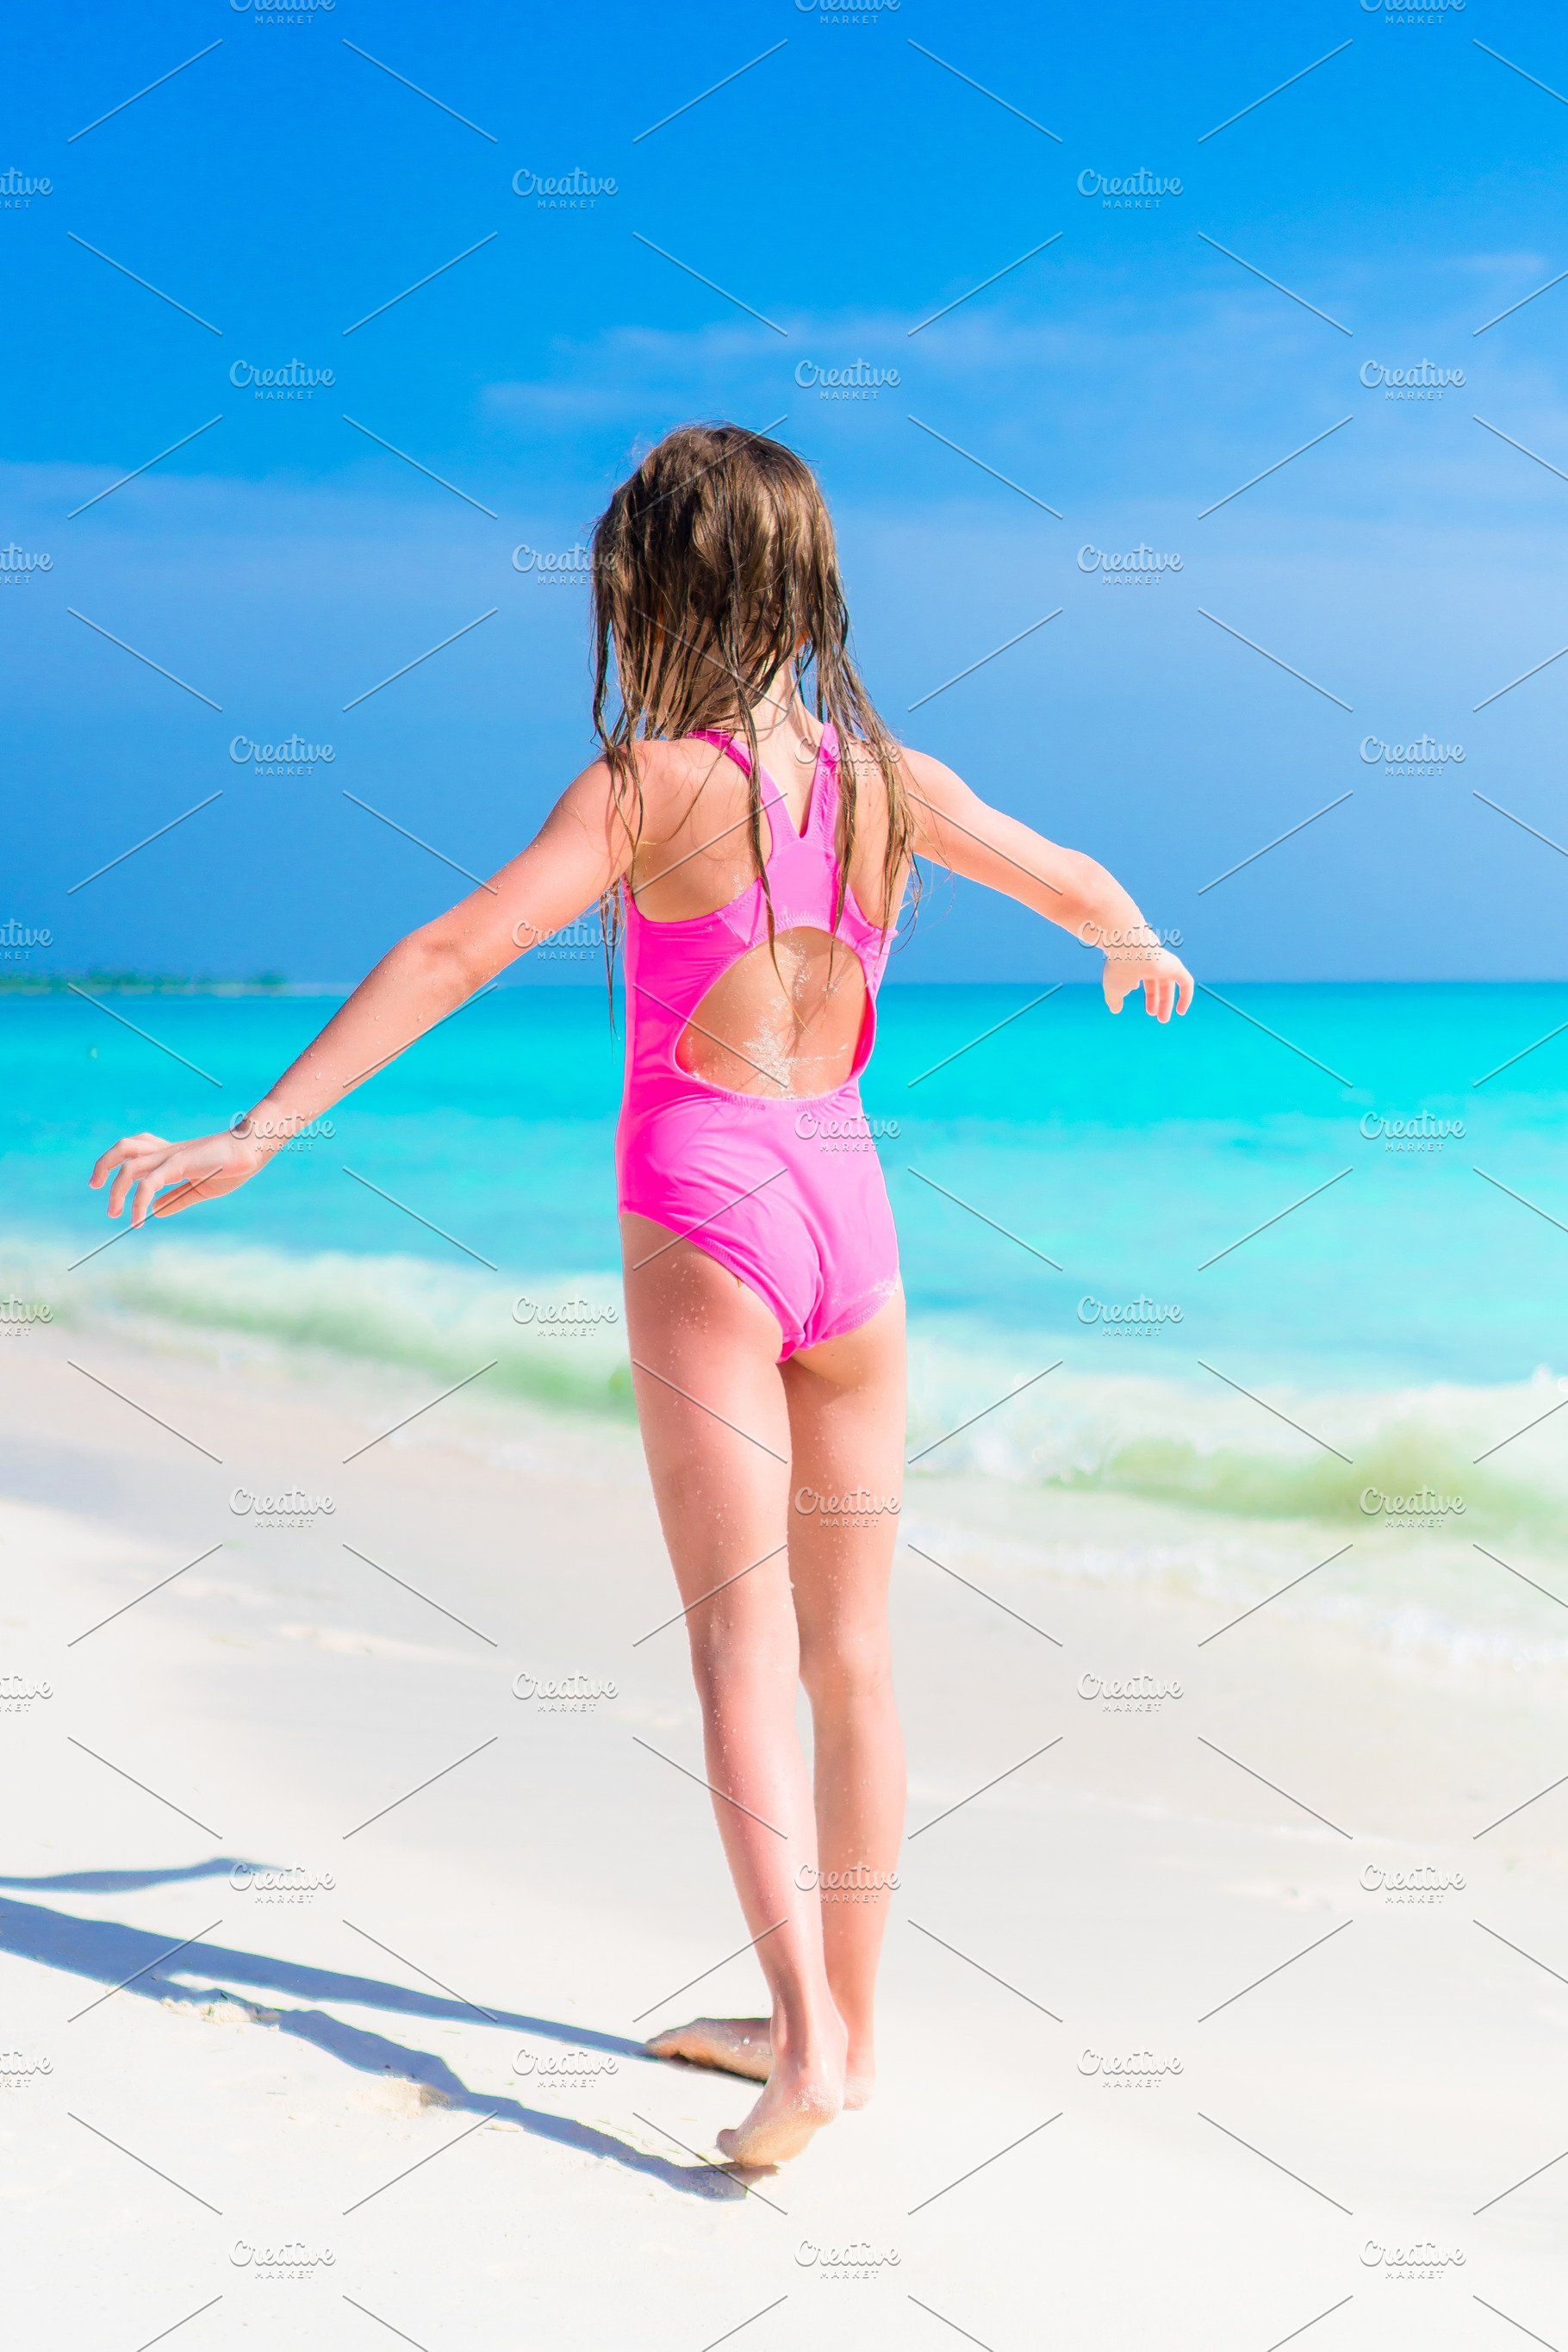 f5da995c03 Adorable little girl in swimsuit on beach vacation ~ People Photos ...